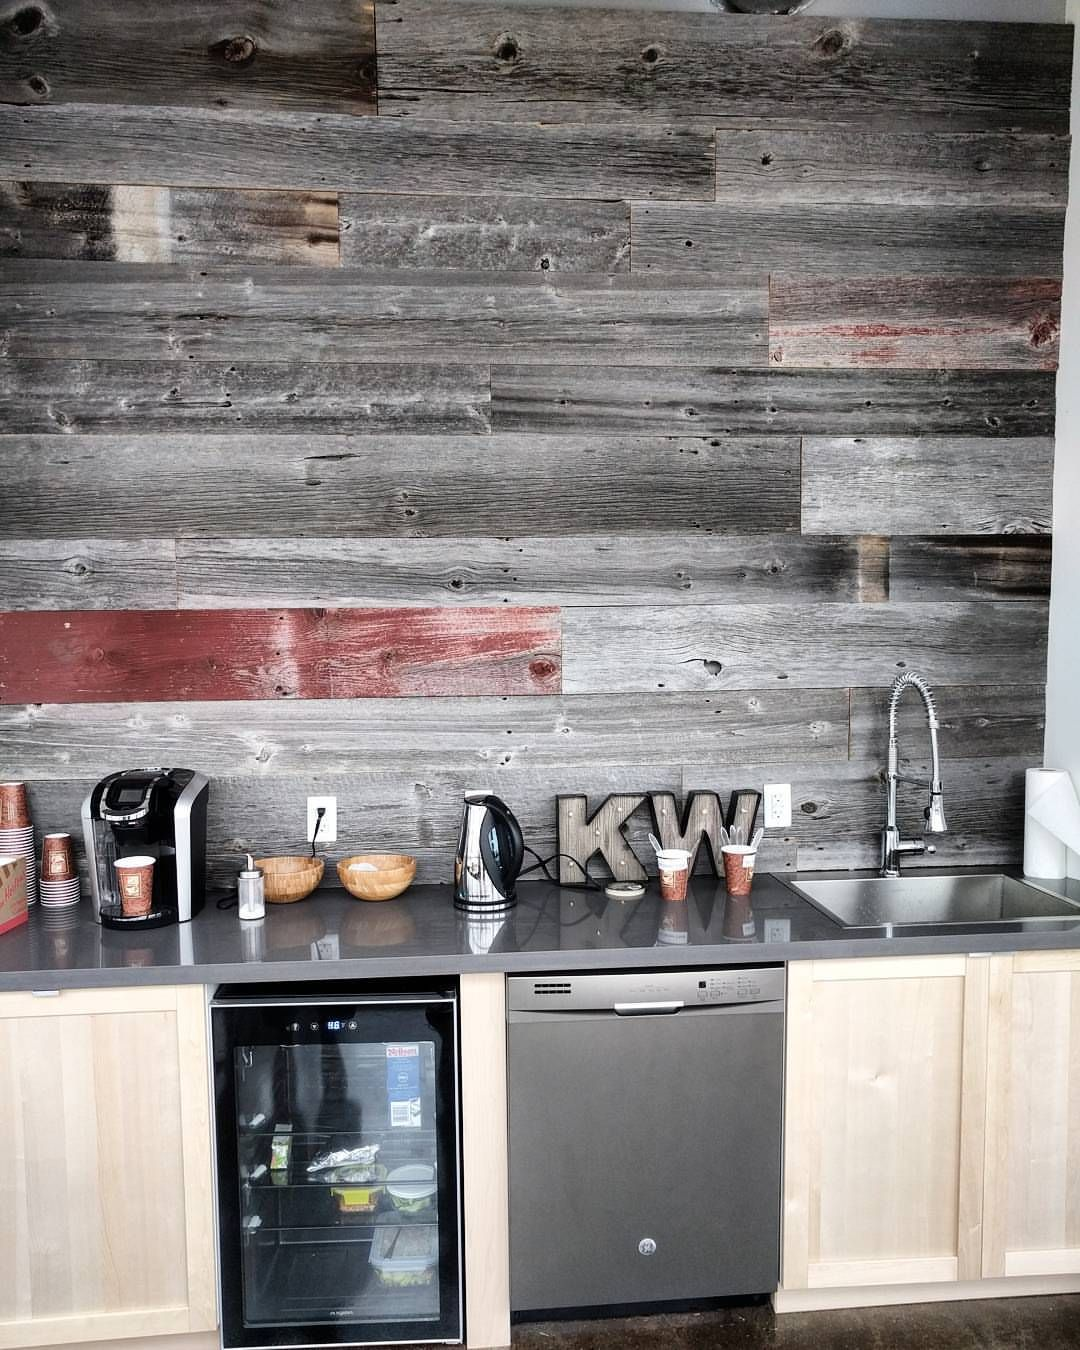 Reclaimed barn board feature wall we installed for Keller ...